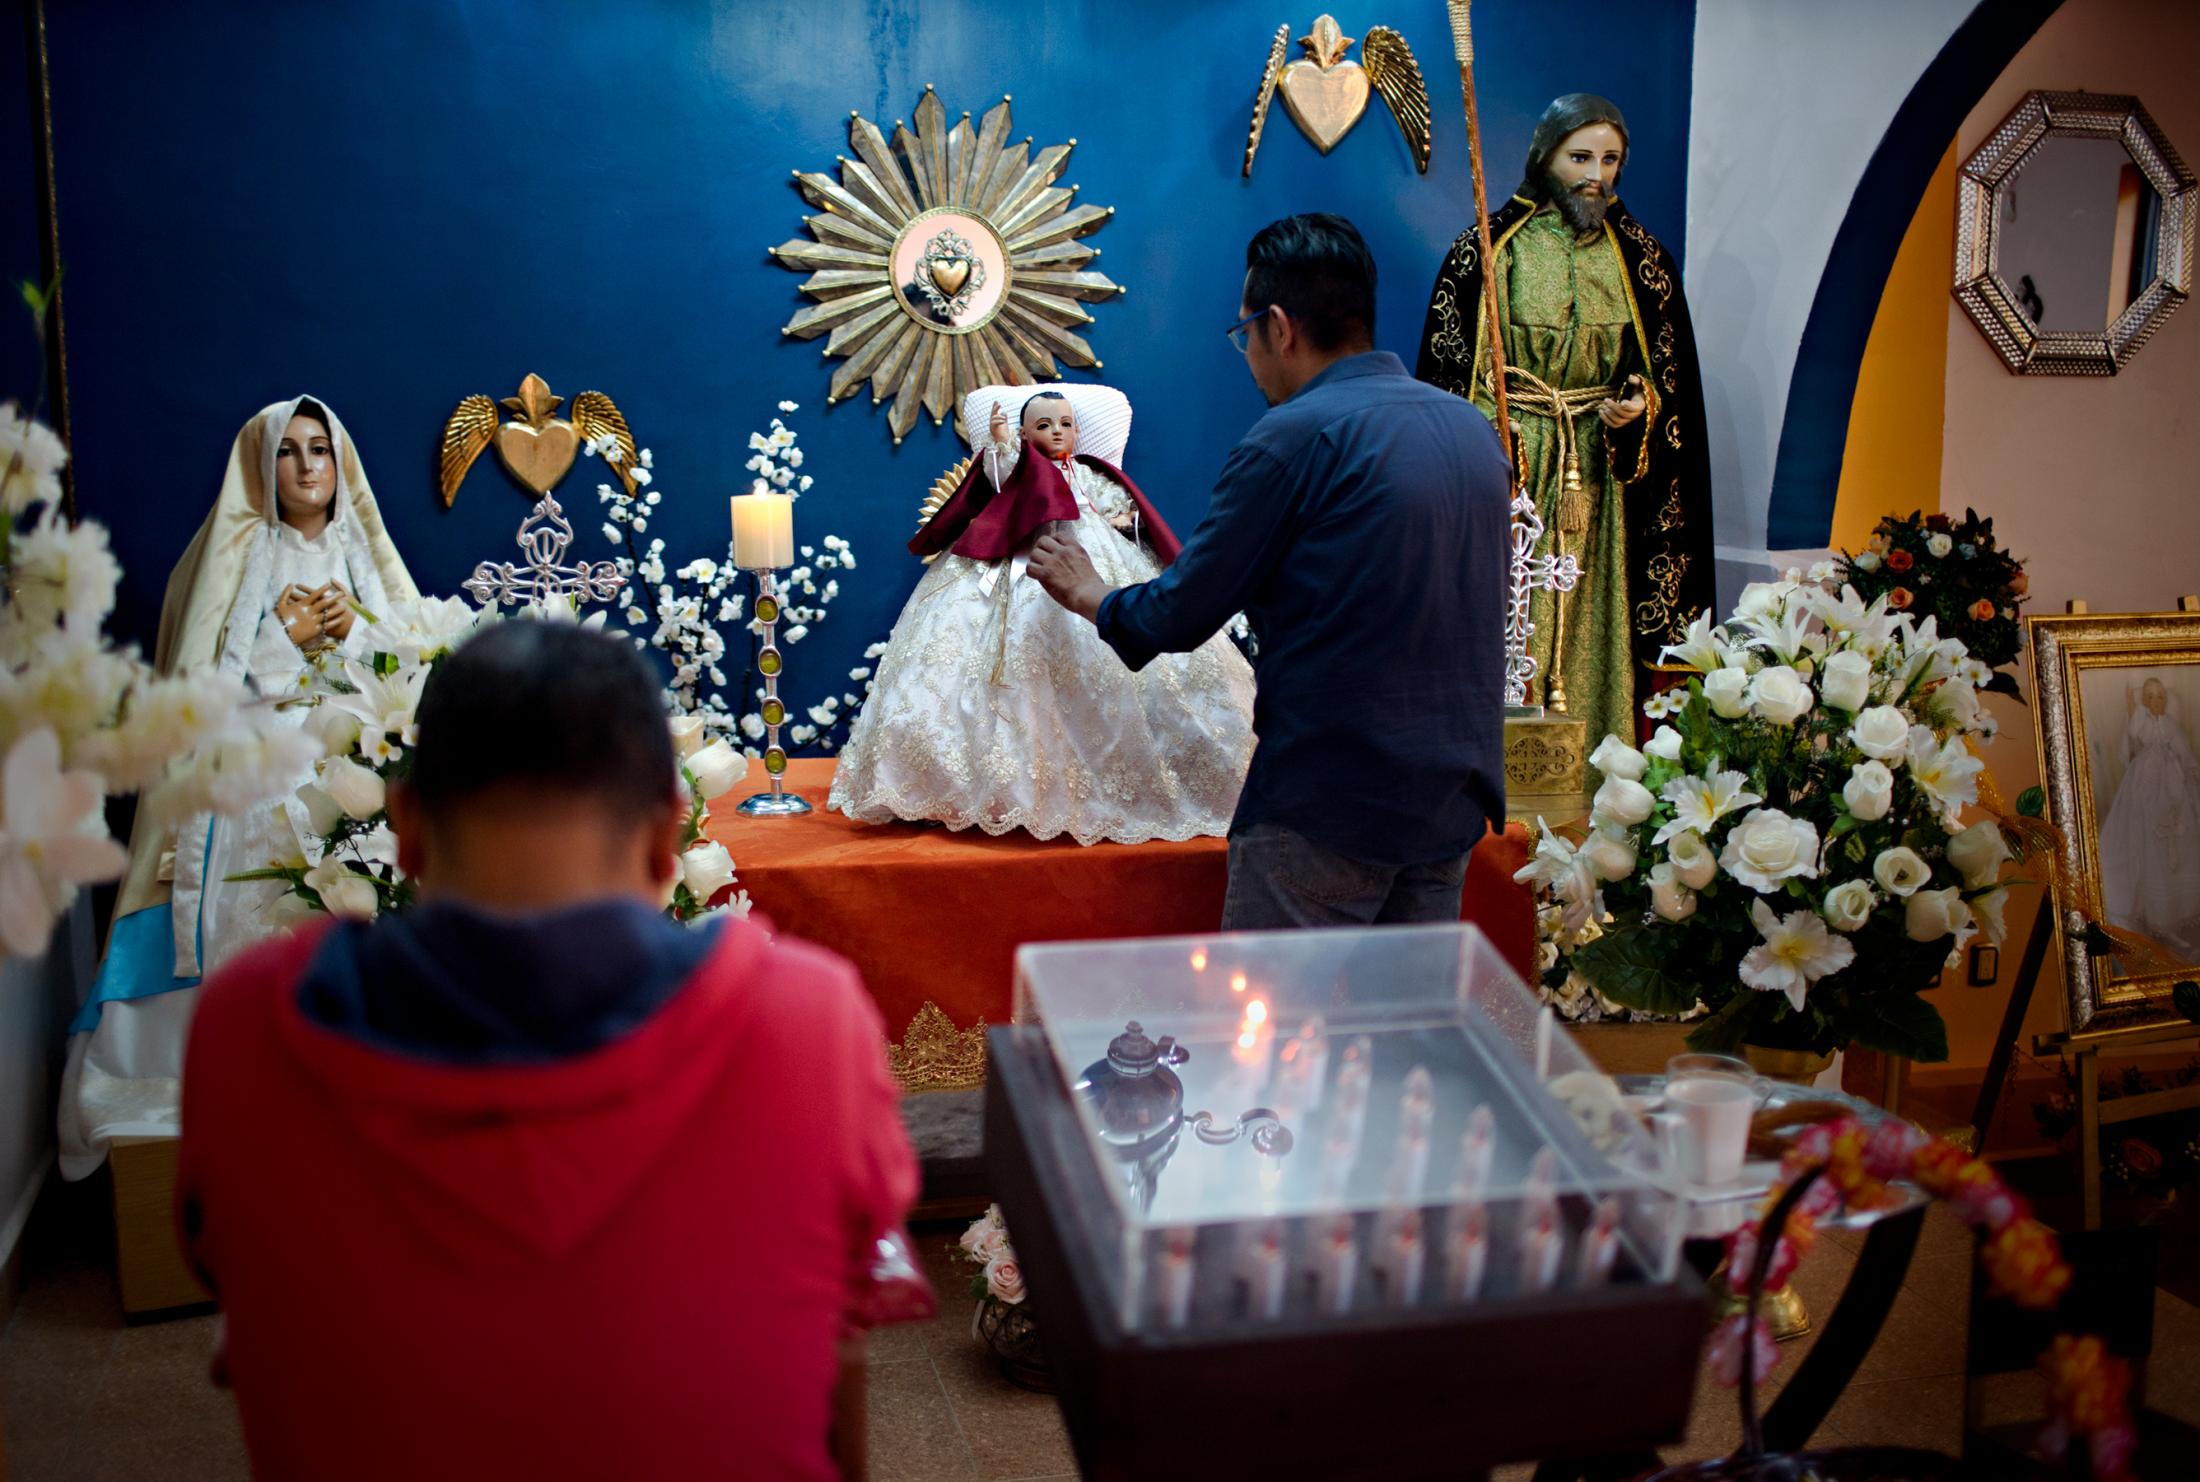 Jorge Serralte Huerte straightens Niñopa's dress in his living room which has been turned into a worship room for the year Niñopa will stay at his house. Fourteen years ago, when he remodeled the house, his anticipated the arrival of Niñopa in 2019 and built the house having in mind the needs of the Niño. Worshipers come early morning before heading onto work to see the Niño.